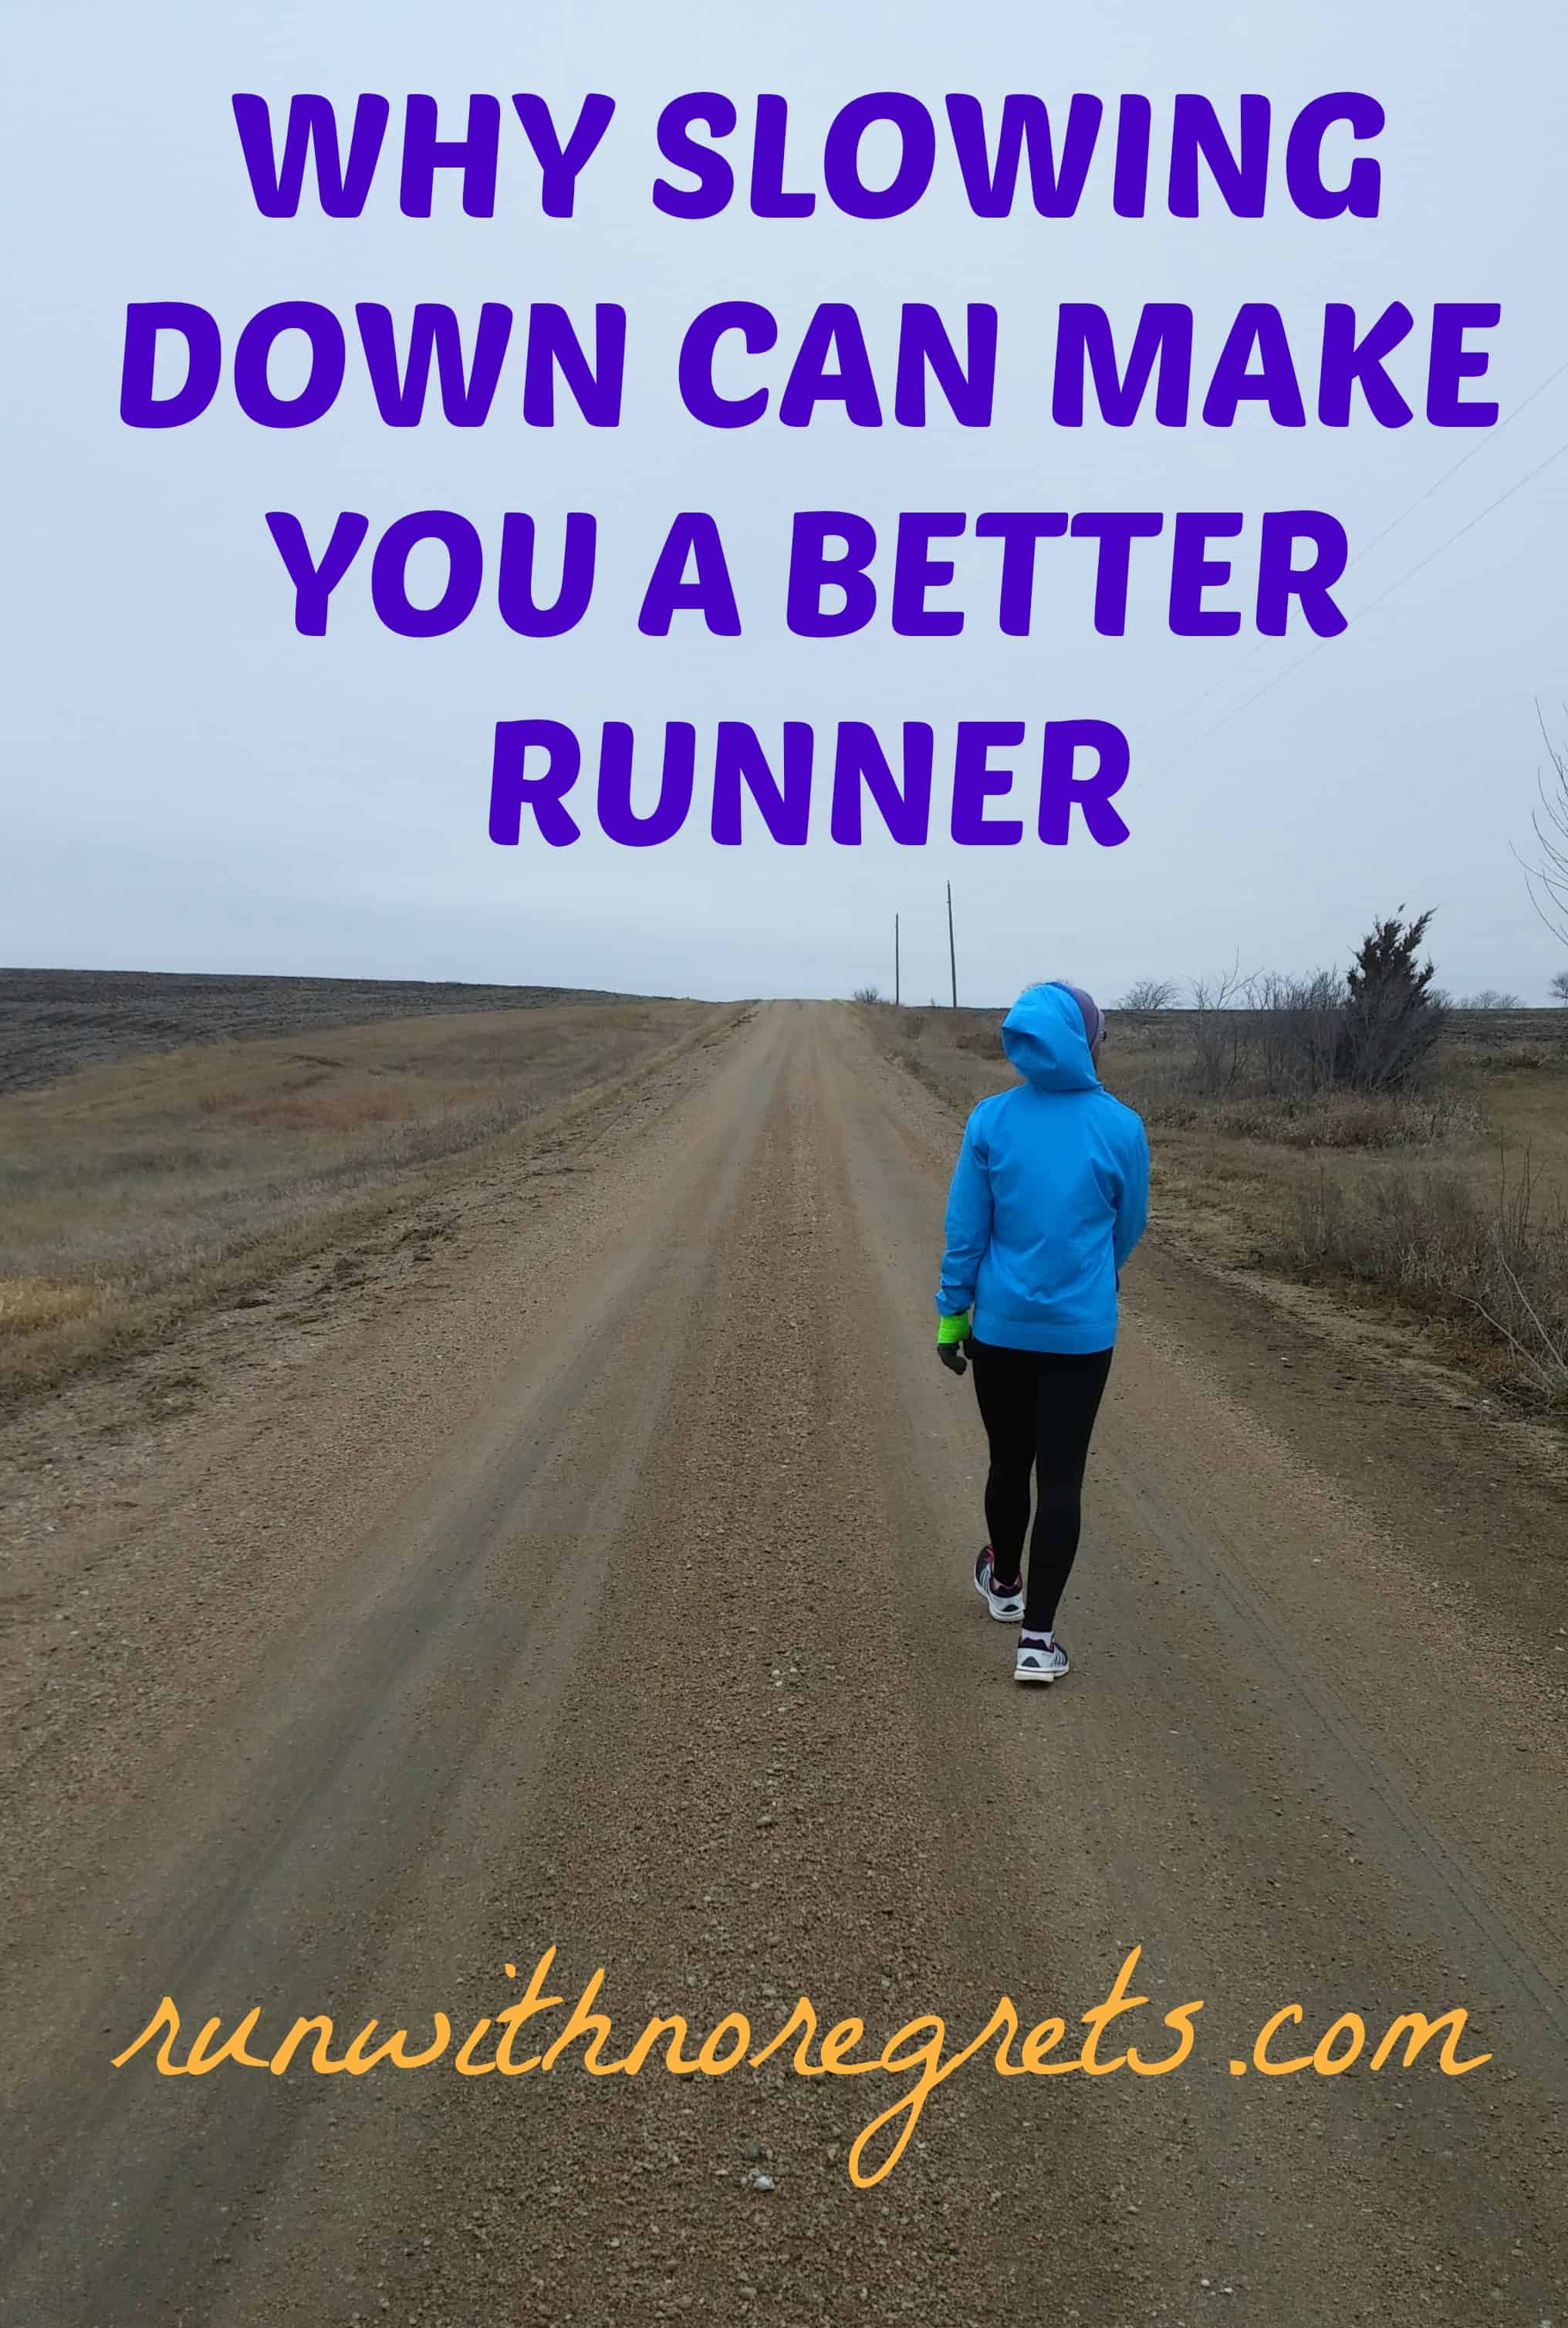 Why Slowing Down Can Make You a Better Runner